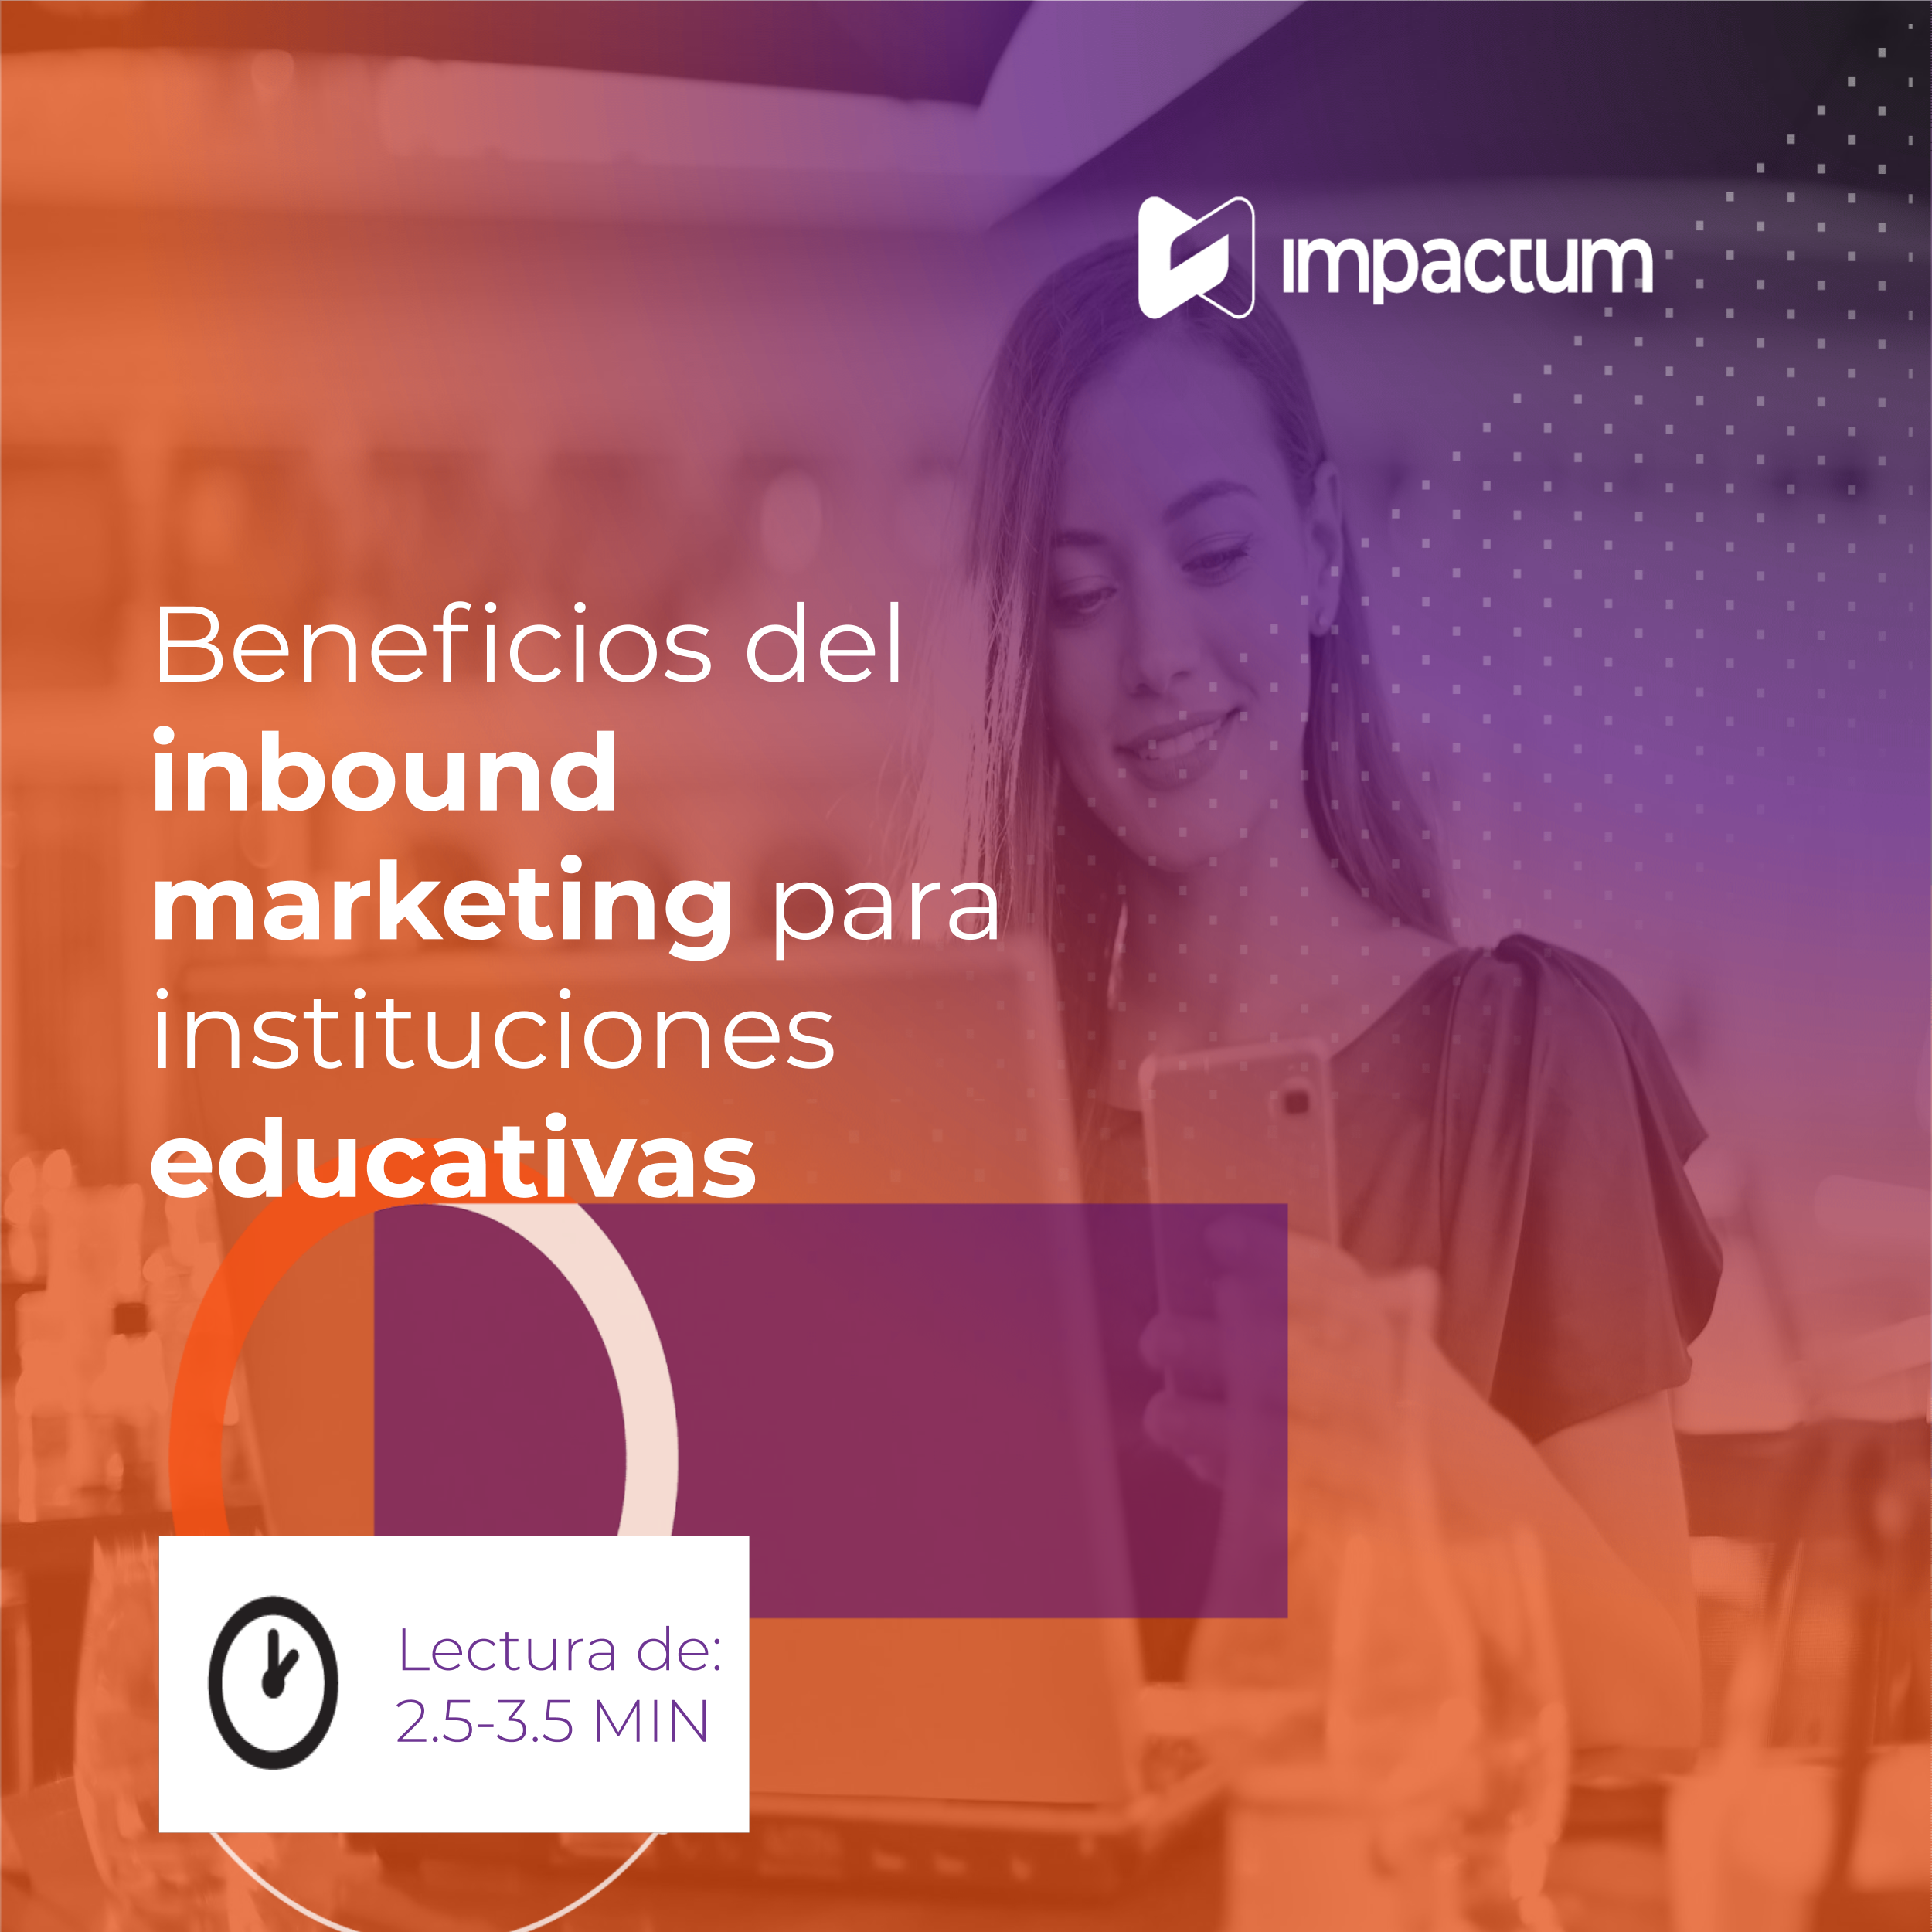 Beneficios del inbound marketing para instituciones educativas